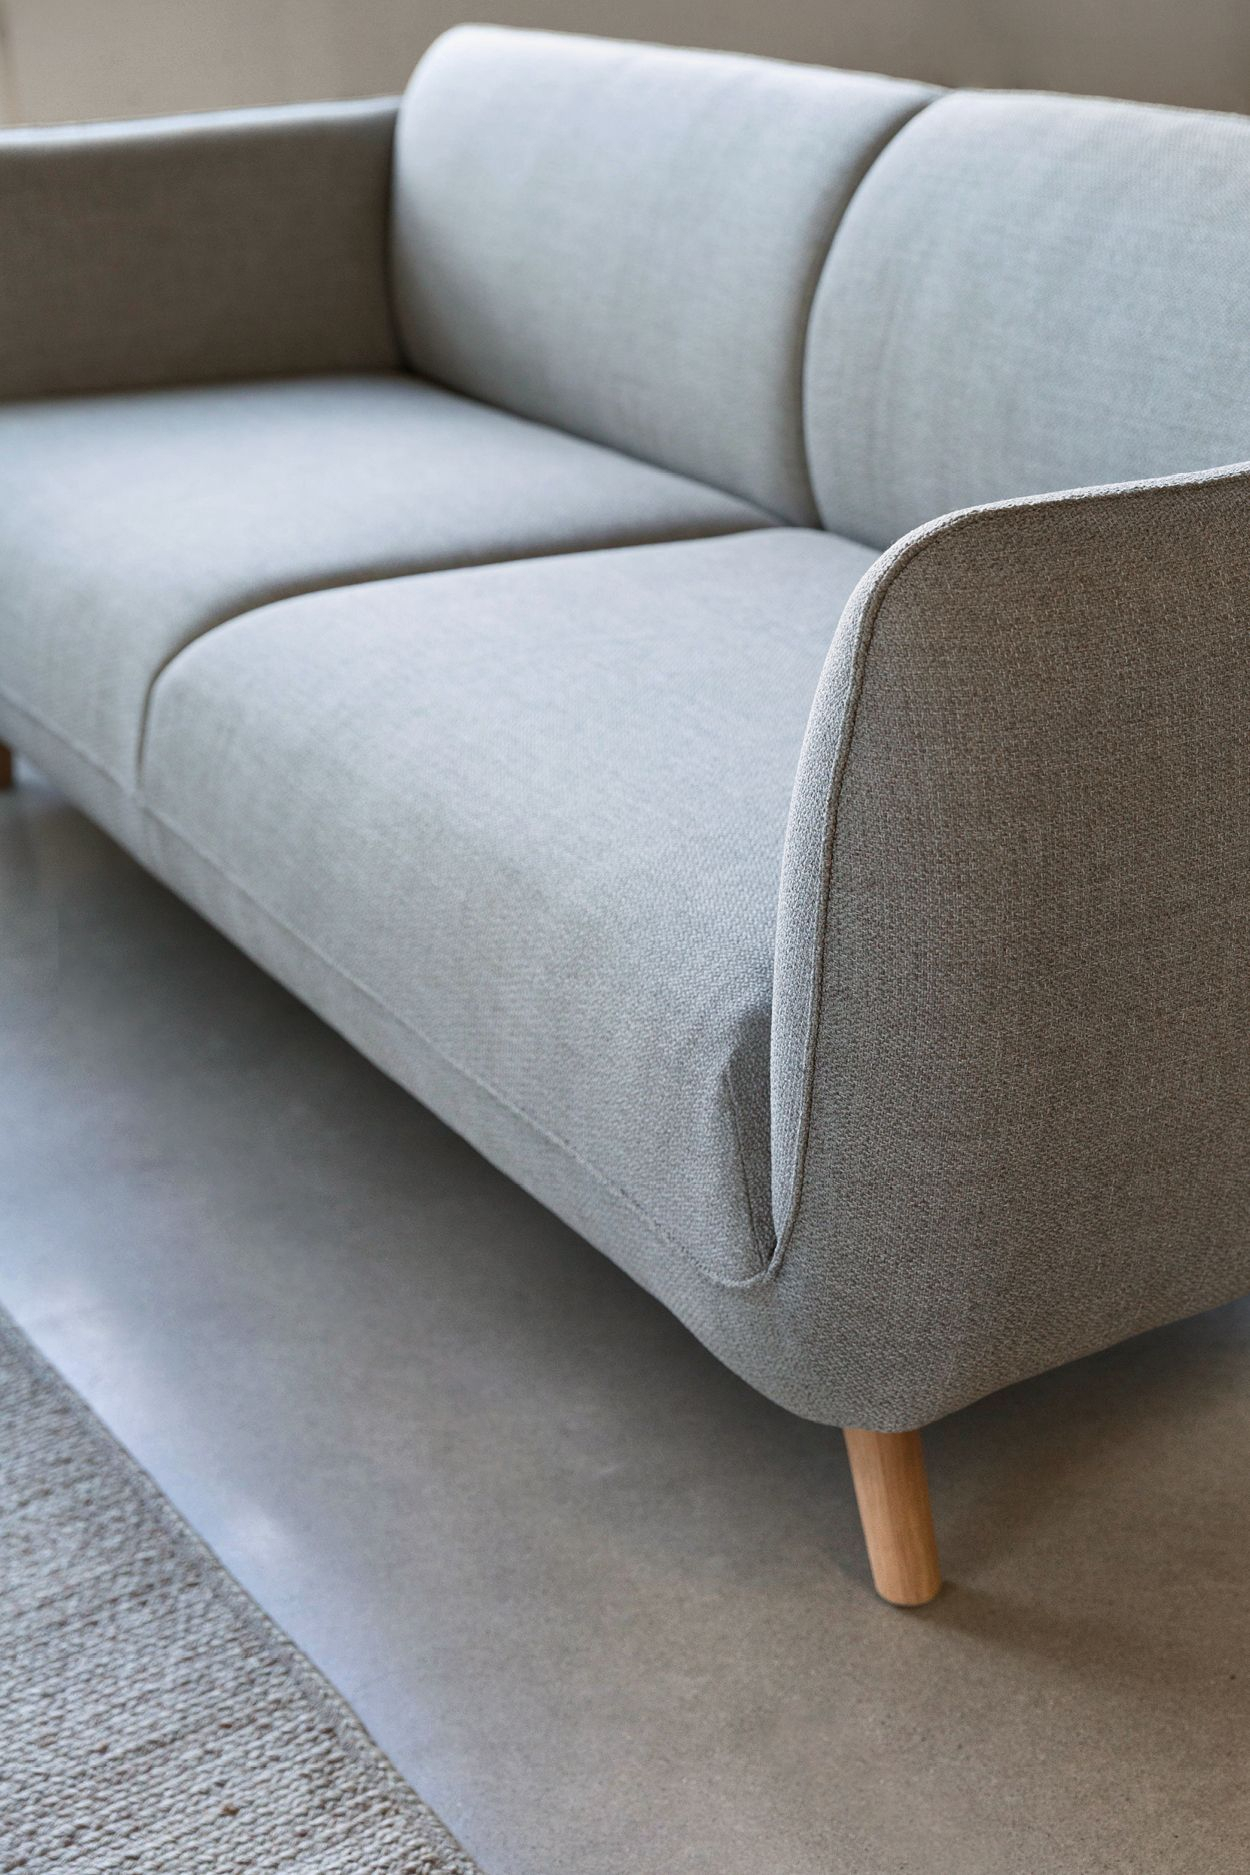 Gray Fabric Sofa, 3 Seat, Solid Wood Legs | Article Haro Modern Throughout Grace Sofa Chairs (Image 18 of 25)